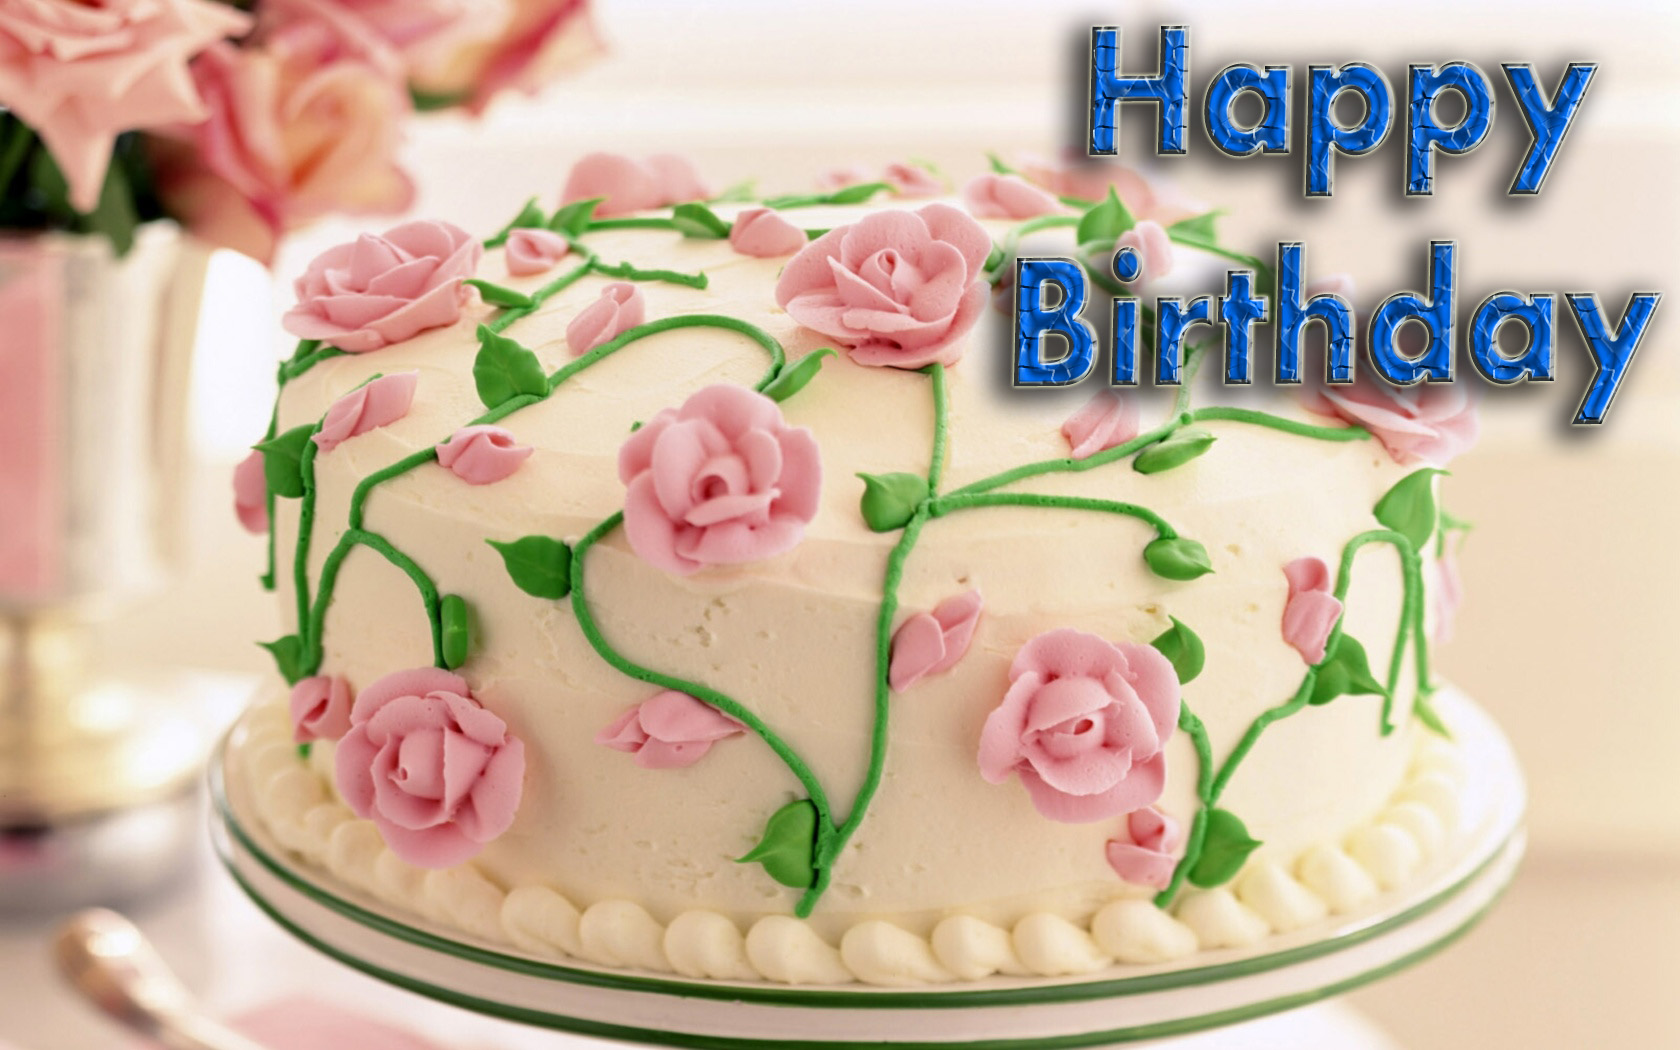 birthday wishes high quality images ; Birthday-Cake-High-Quality-HD-Wallpaper-and-Images